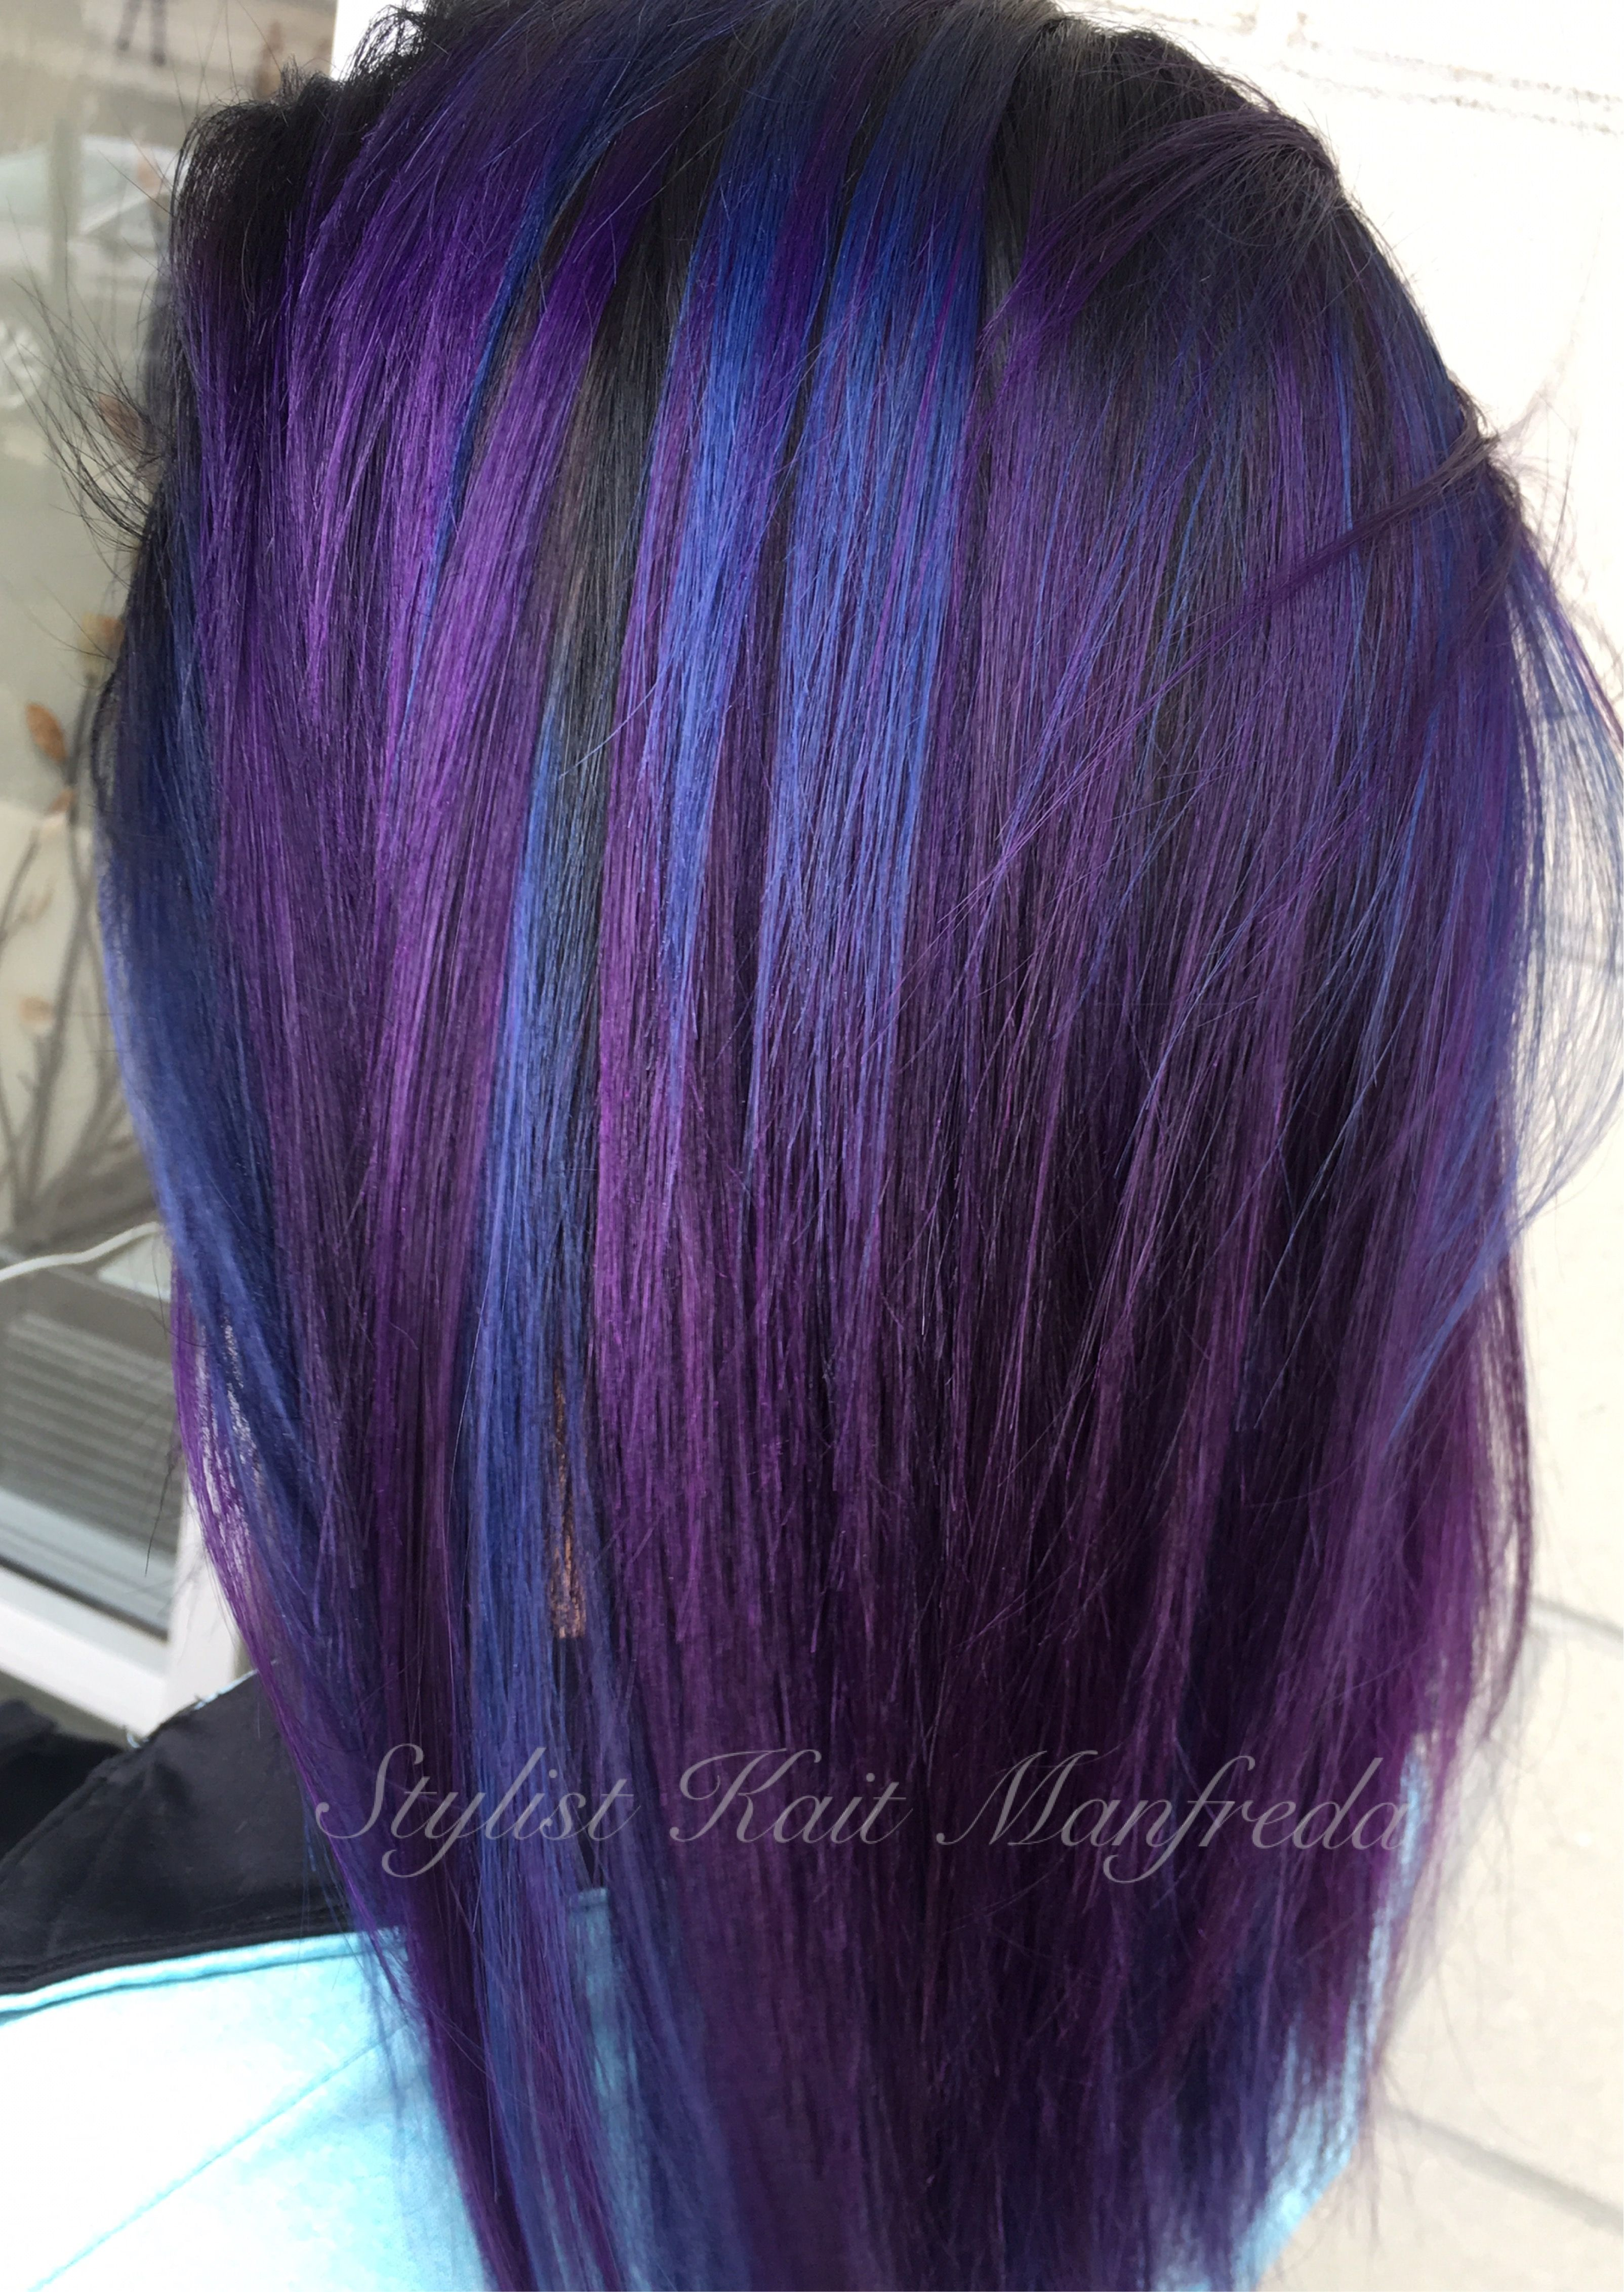 Blue And Purple Hair With Black Shadow Root Using Joico Intensity Colors By Stylist Kait Manfreda Purple Hair Vivid Hair Color Brunette Hair Color